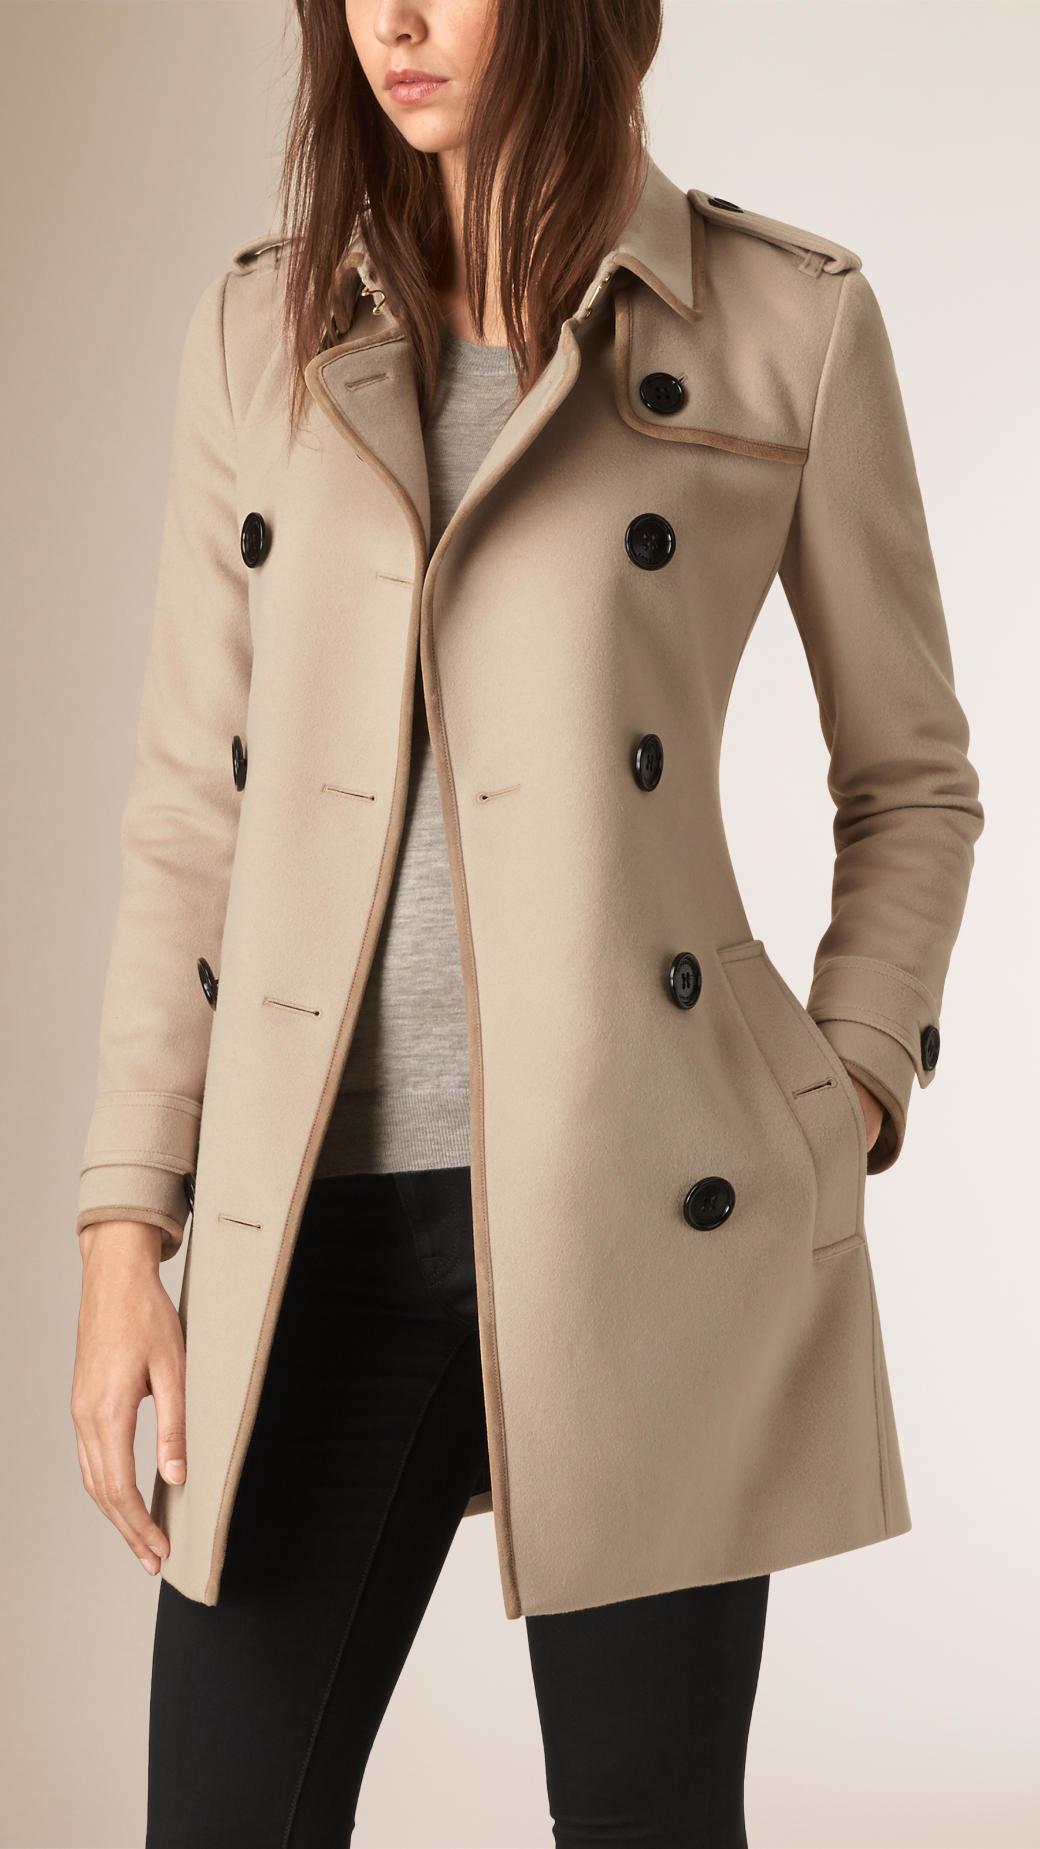 Burberry Leather Trim Wool Cashmere Trench Coat in Natural | Lyst